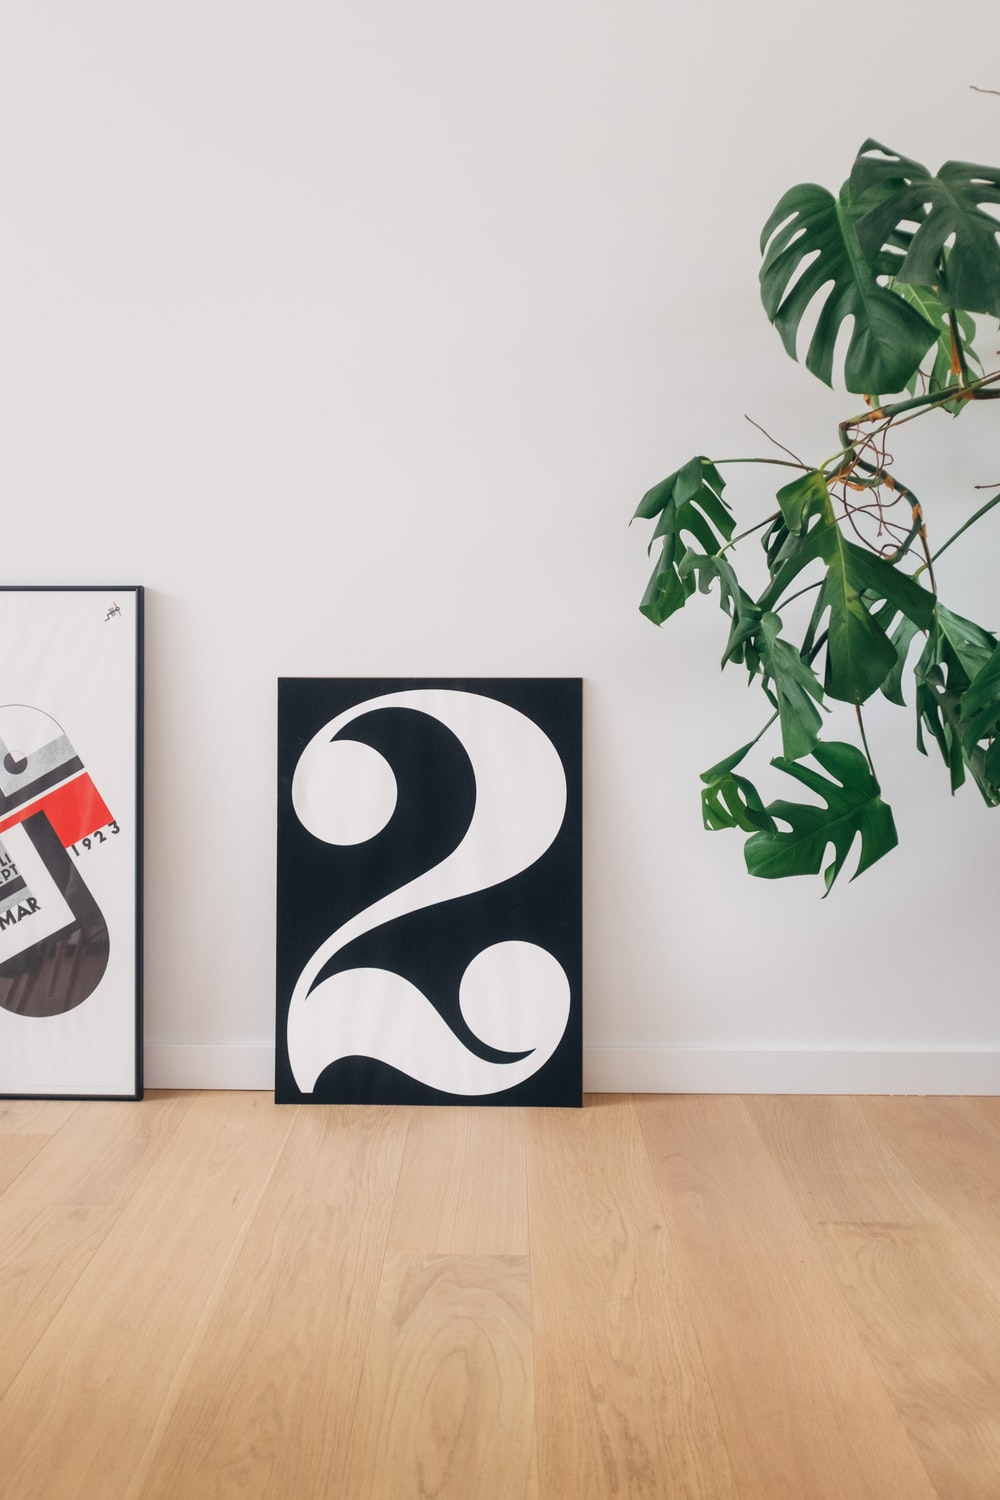 black and white number 2 wall decor